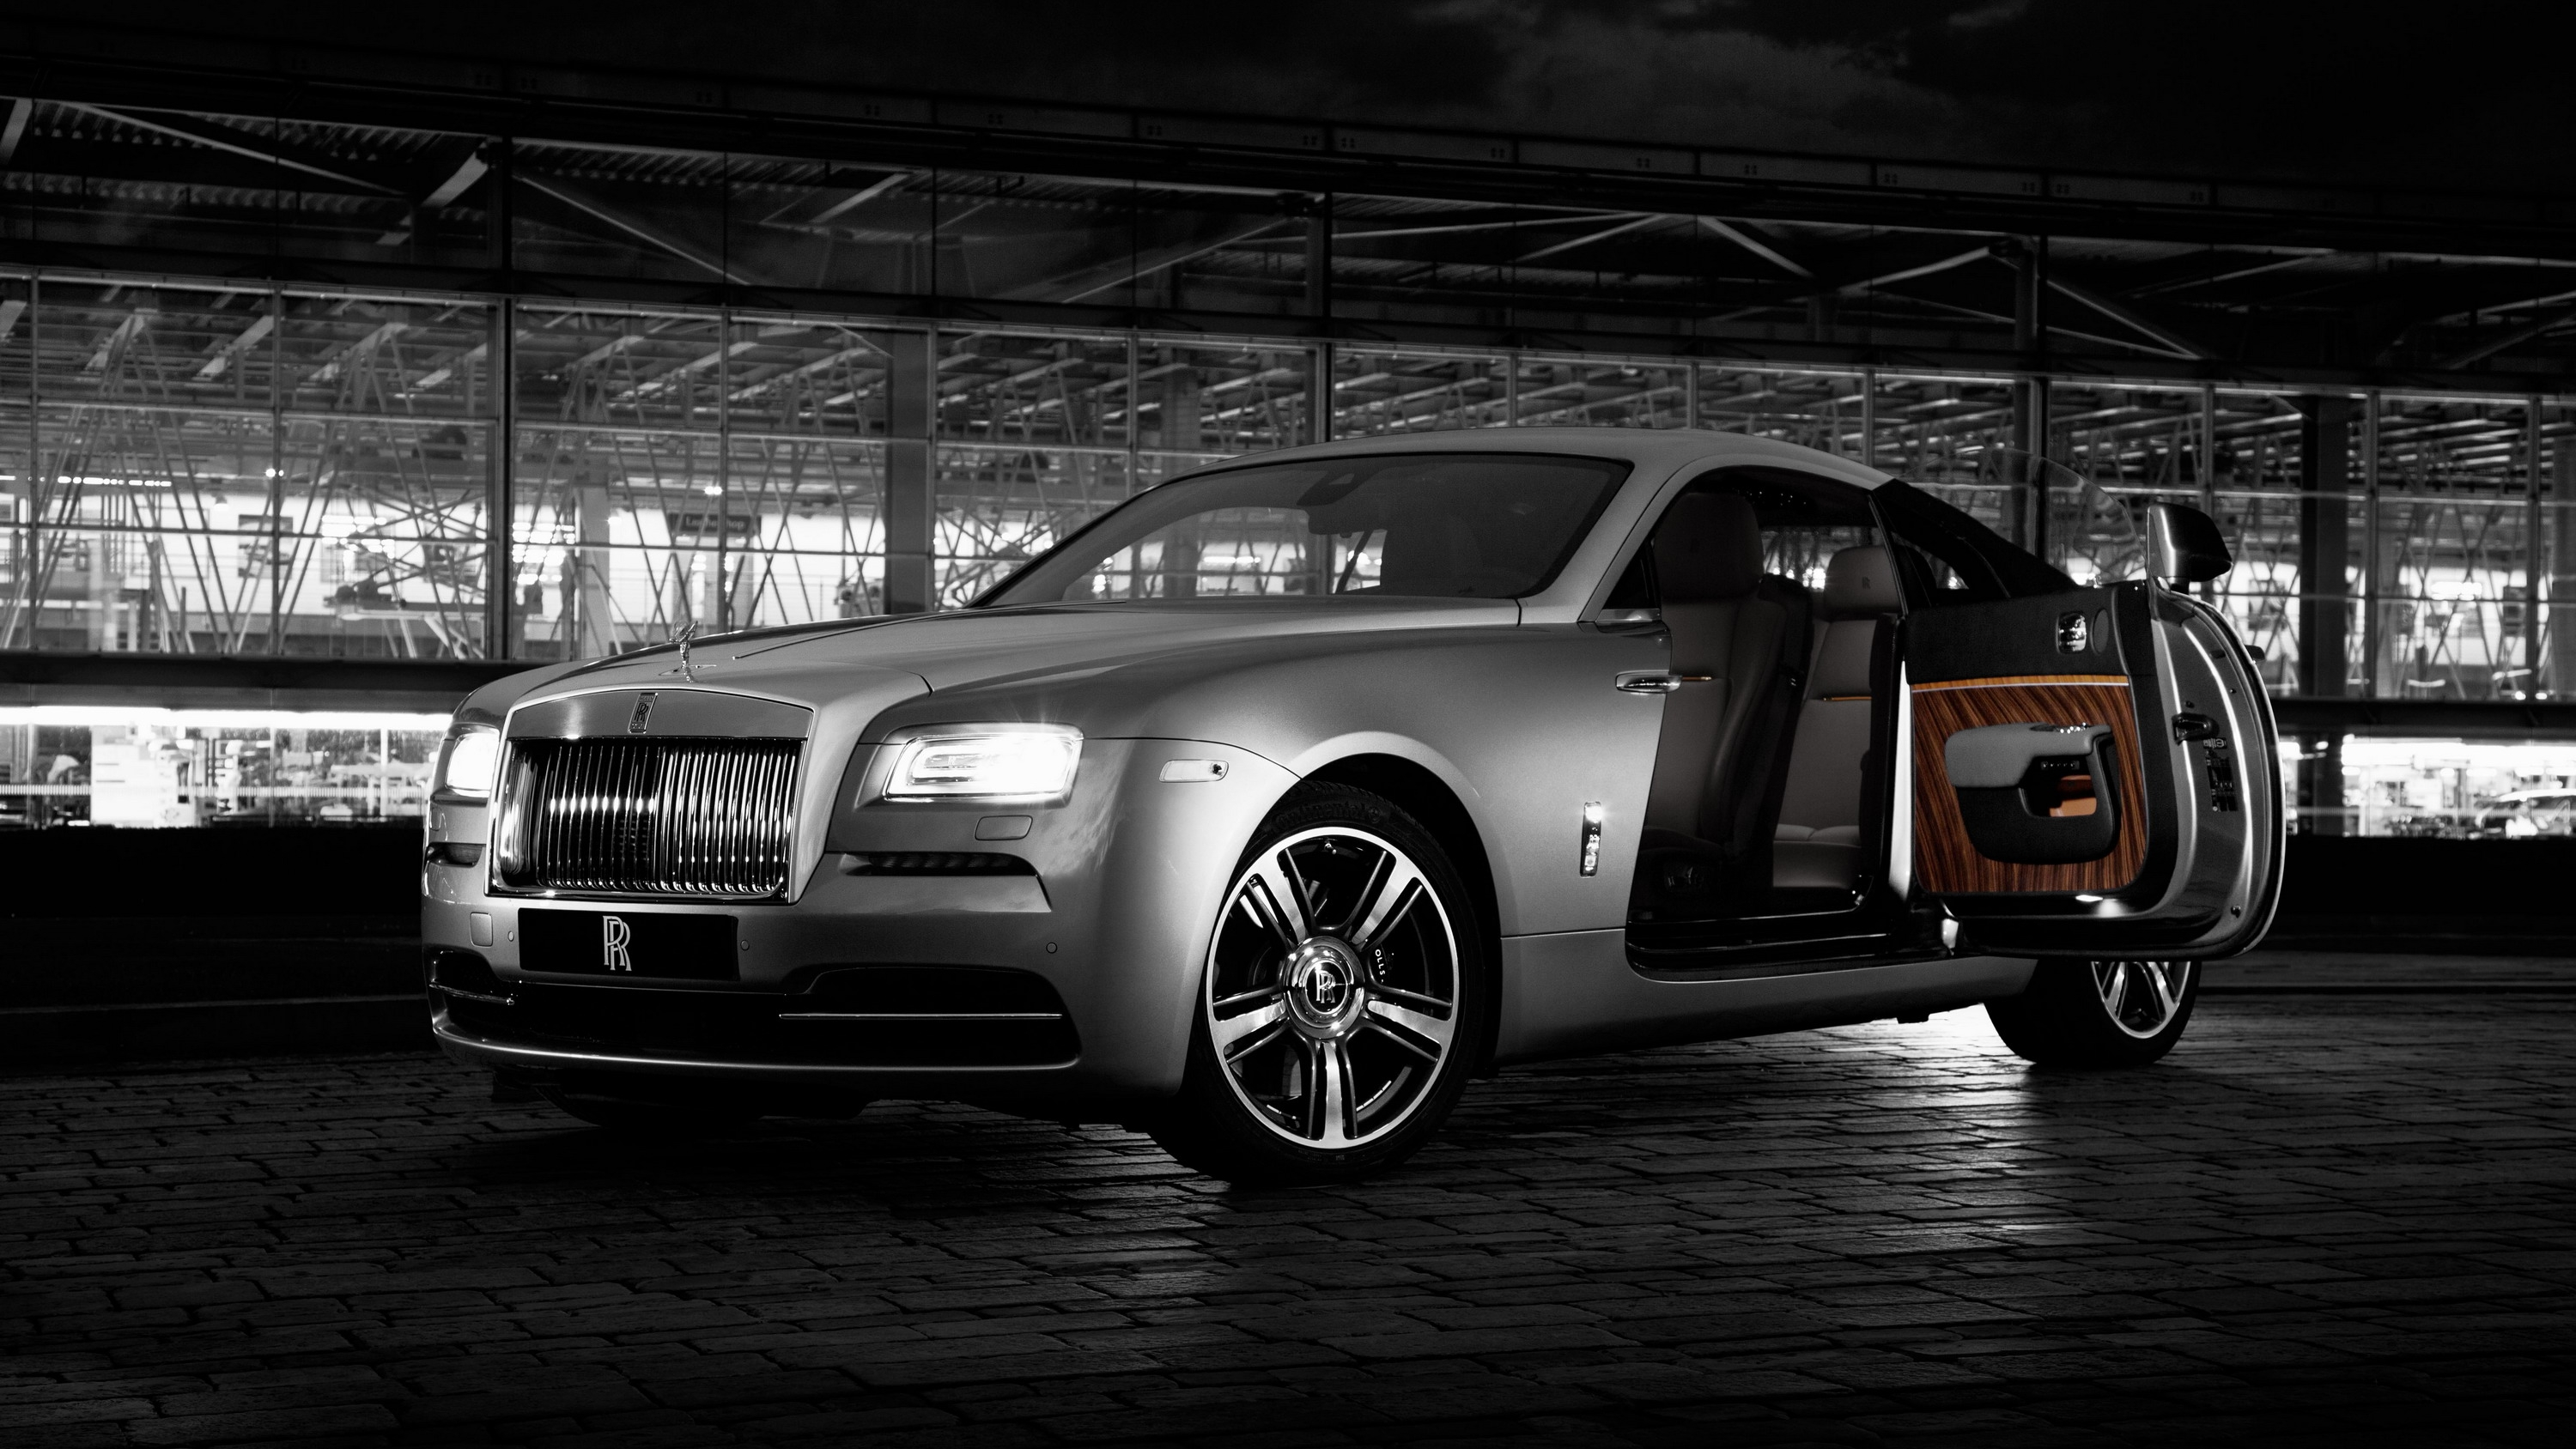 2015 Rolls Royce Wraith Inspired By Film Pictures Photos Wallpapers What Do You Think